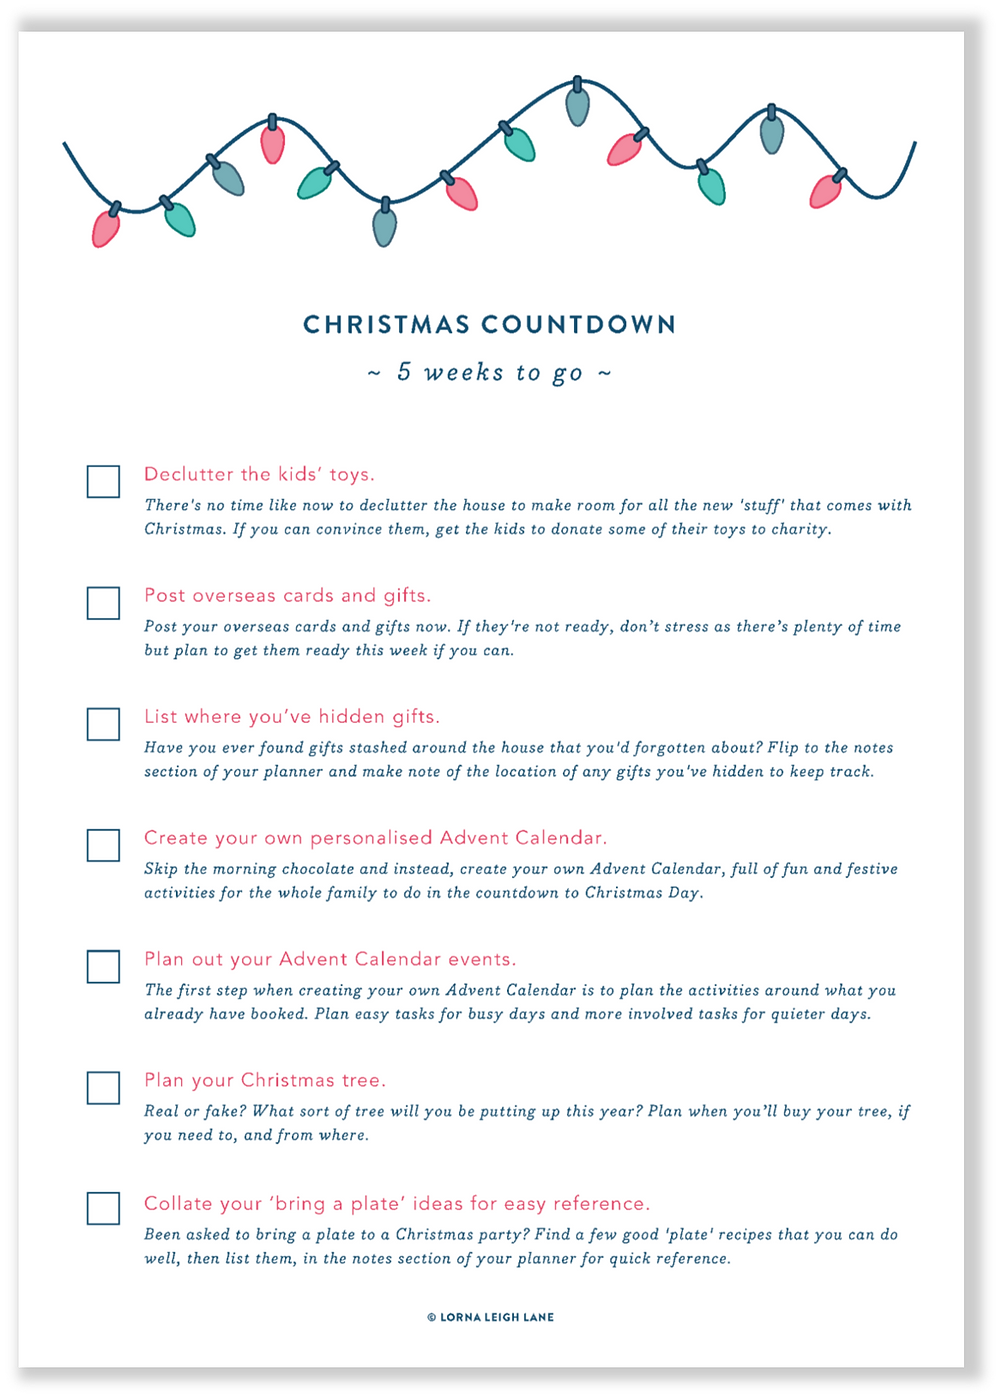 Christmas Countdown - 5 weeks to go